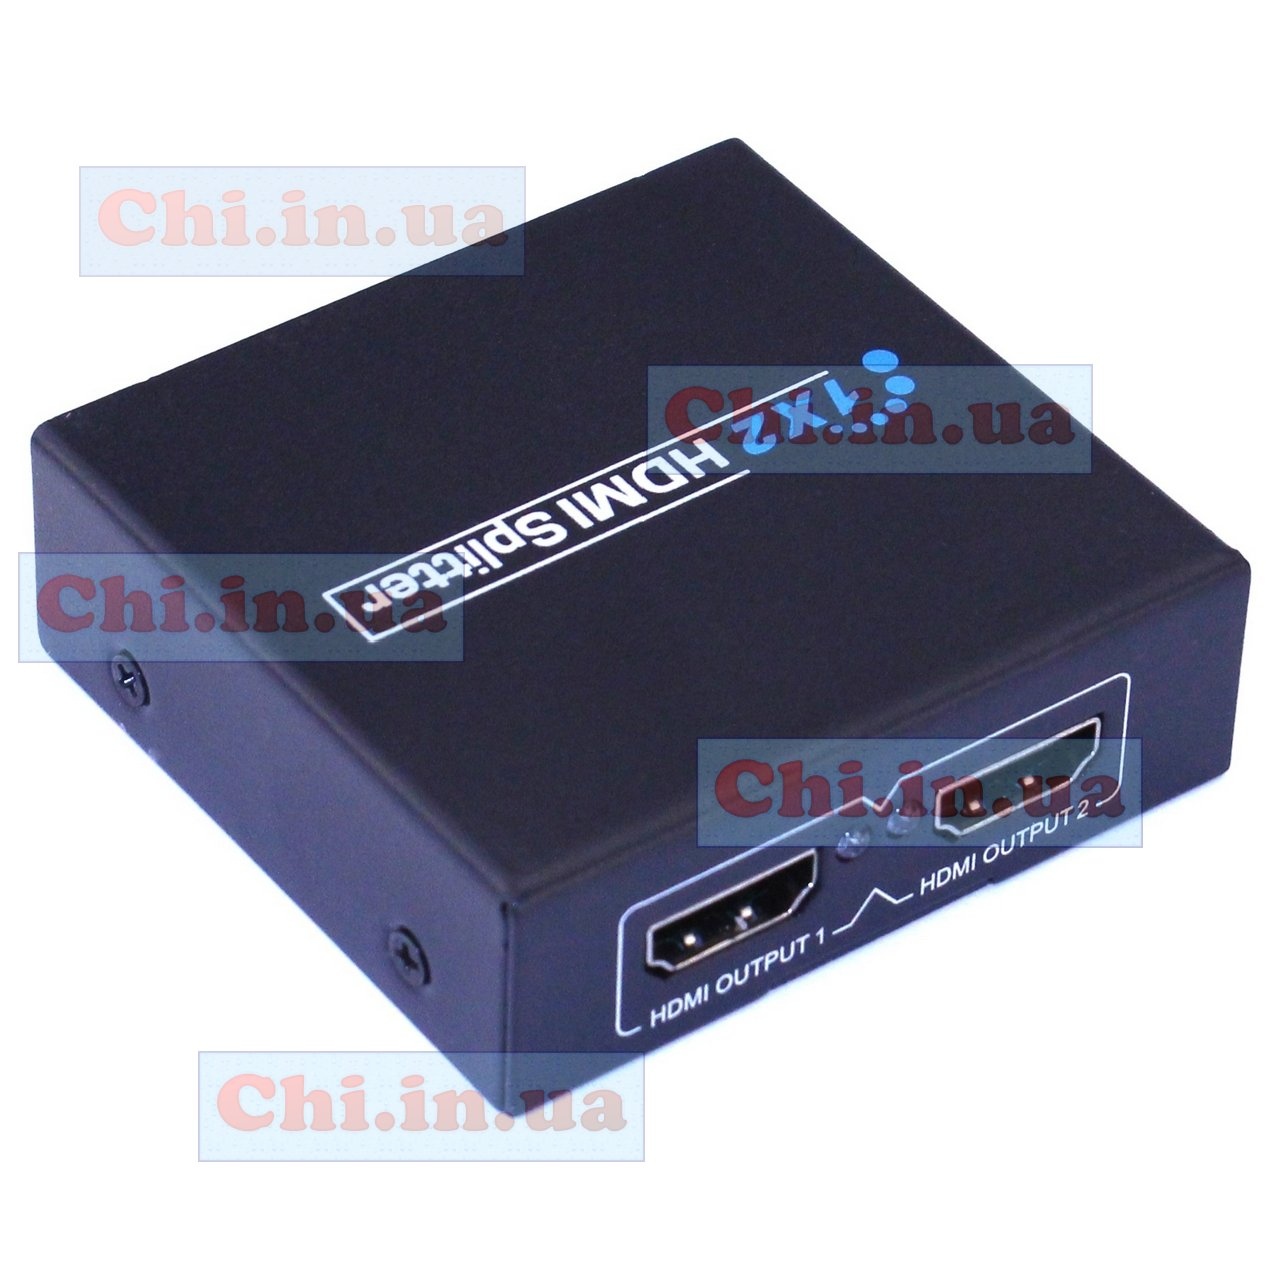 hdmi splitter 2 out 1 in